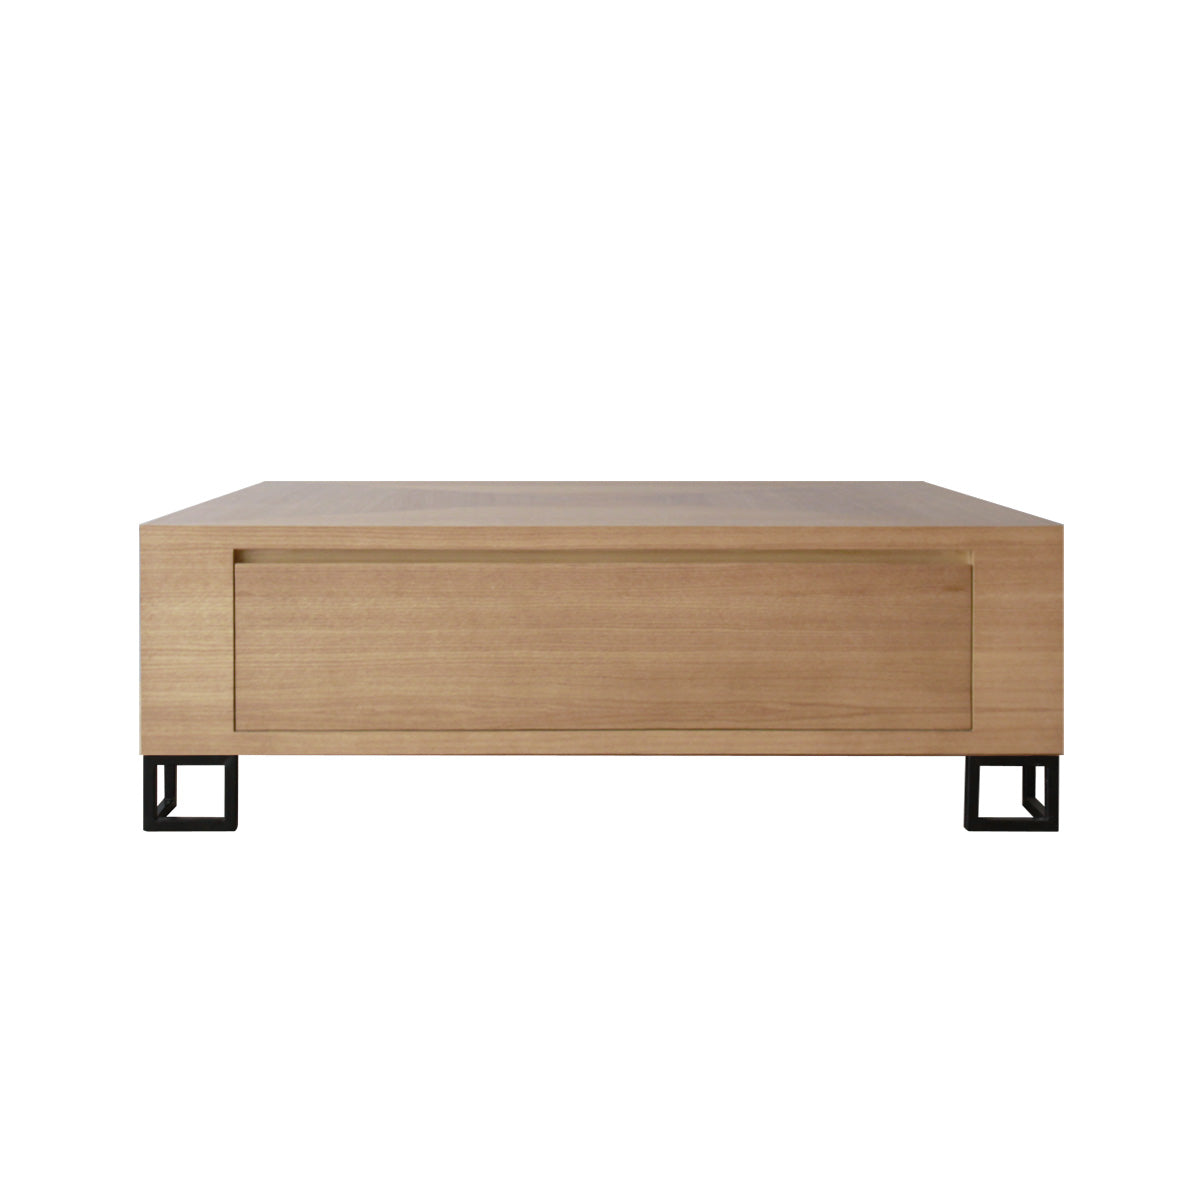 Dexter Rectangular Coffee Table